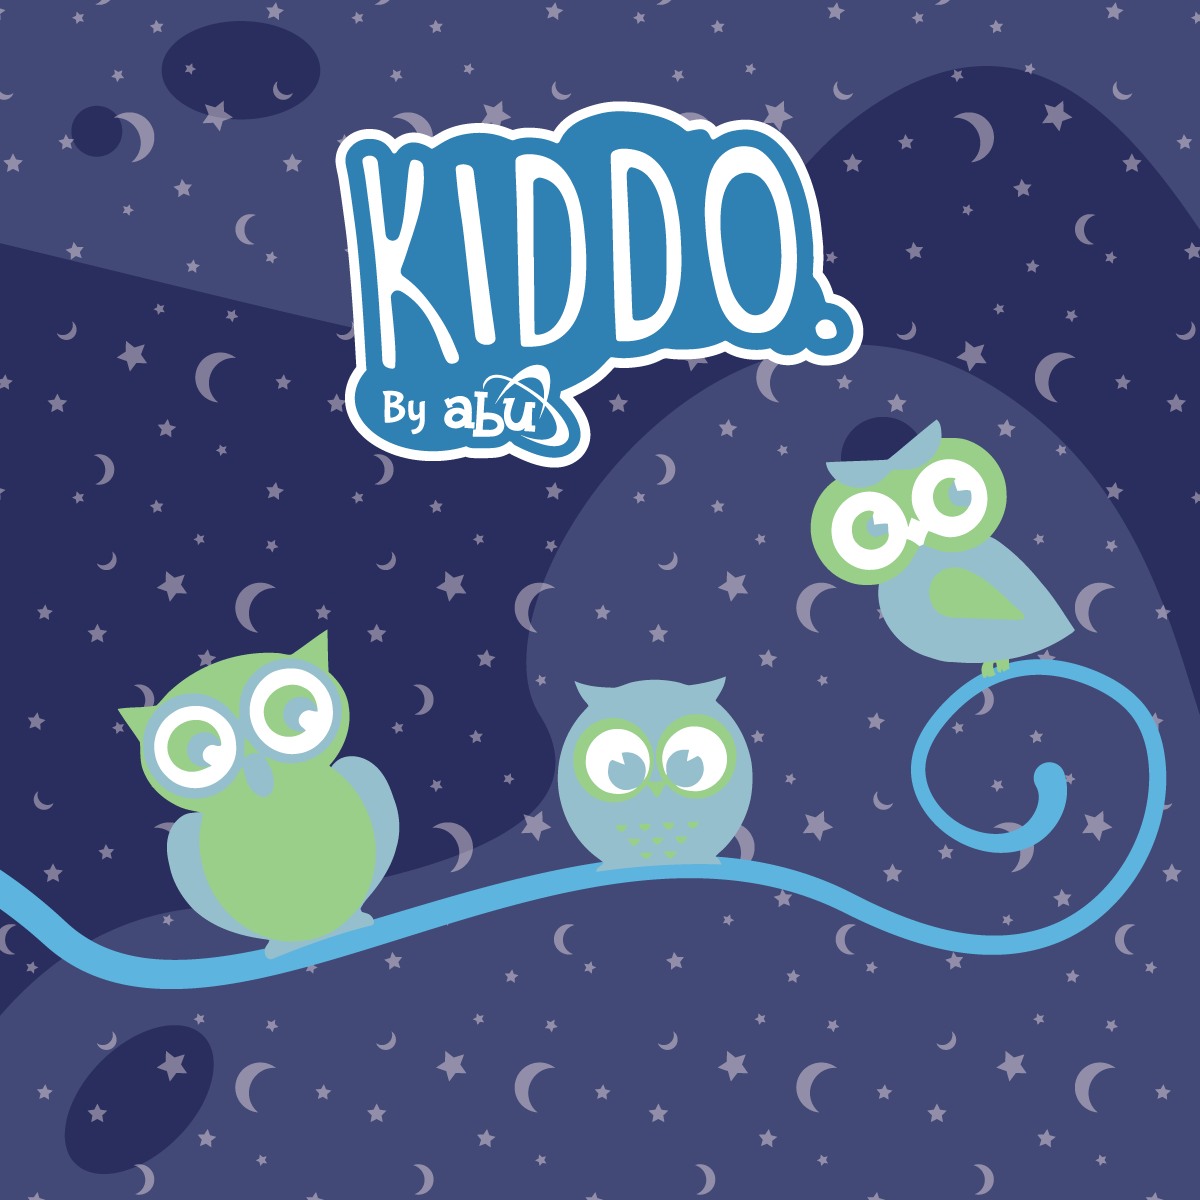 Kiddo By ABU